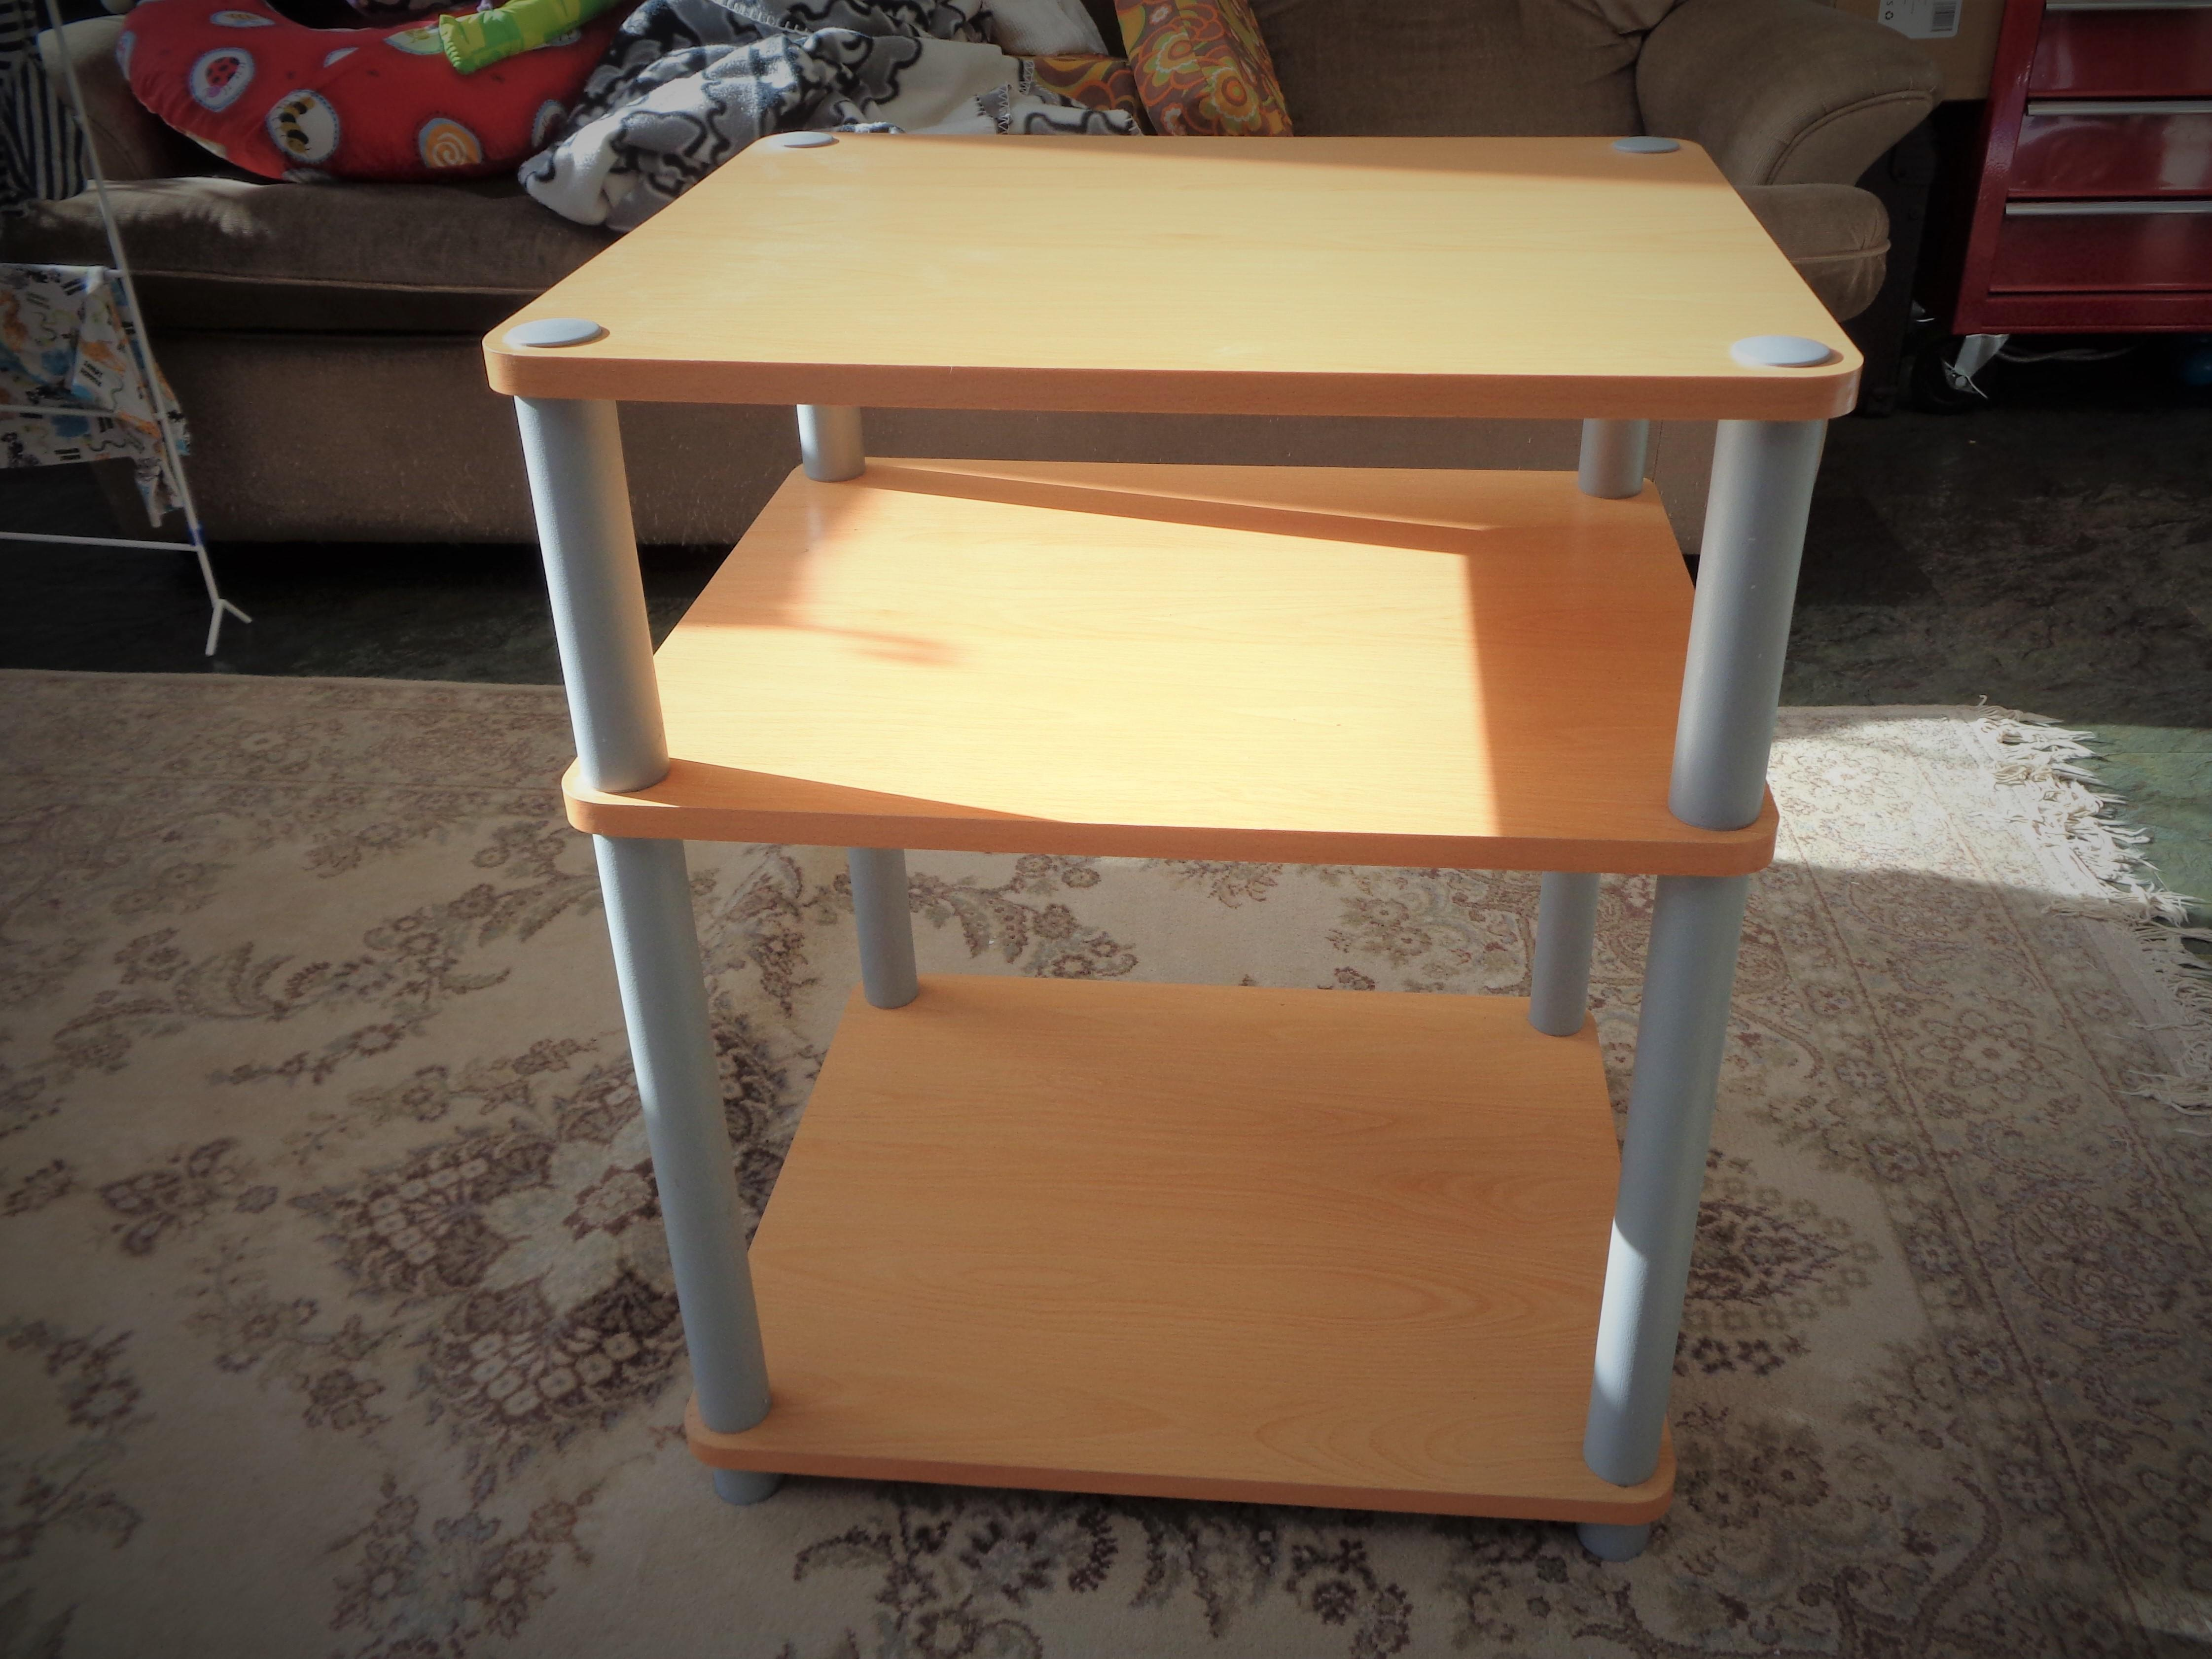 Small table with plastic towers and 3 wooden shelves.